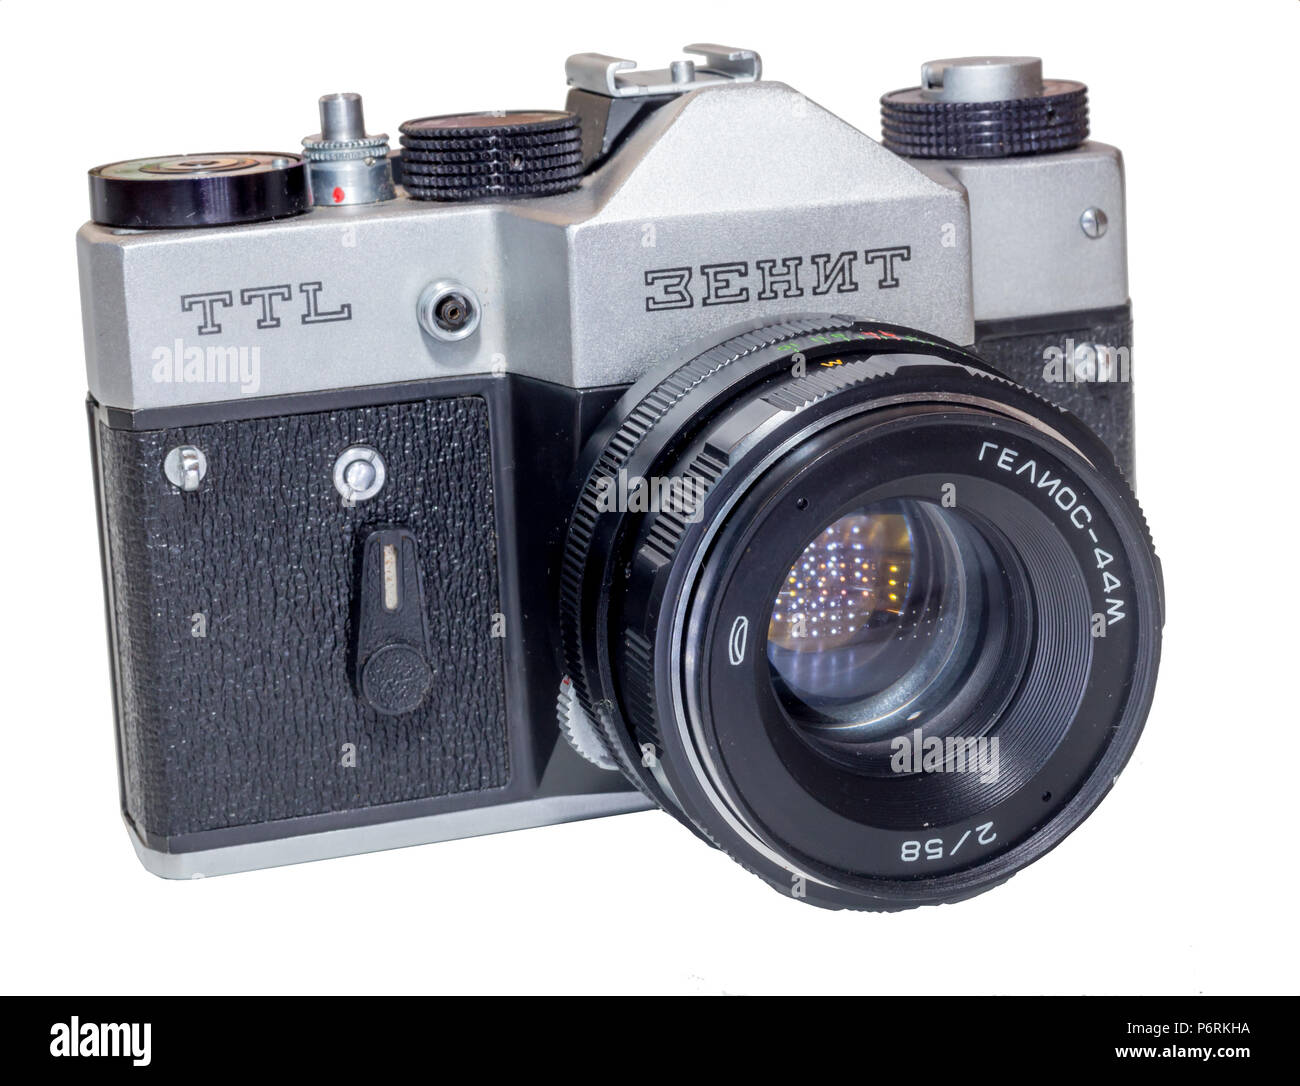 Russia, Vladivostok, 11/06/2017. Film camera Zenit-TTL (M42 mount) with lens Helios-44M 58mm f/2. Manufactured by KMZ (Krasnogorsk Mechanical Works, U - Stock Image